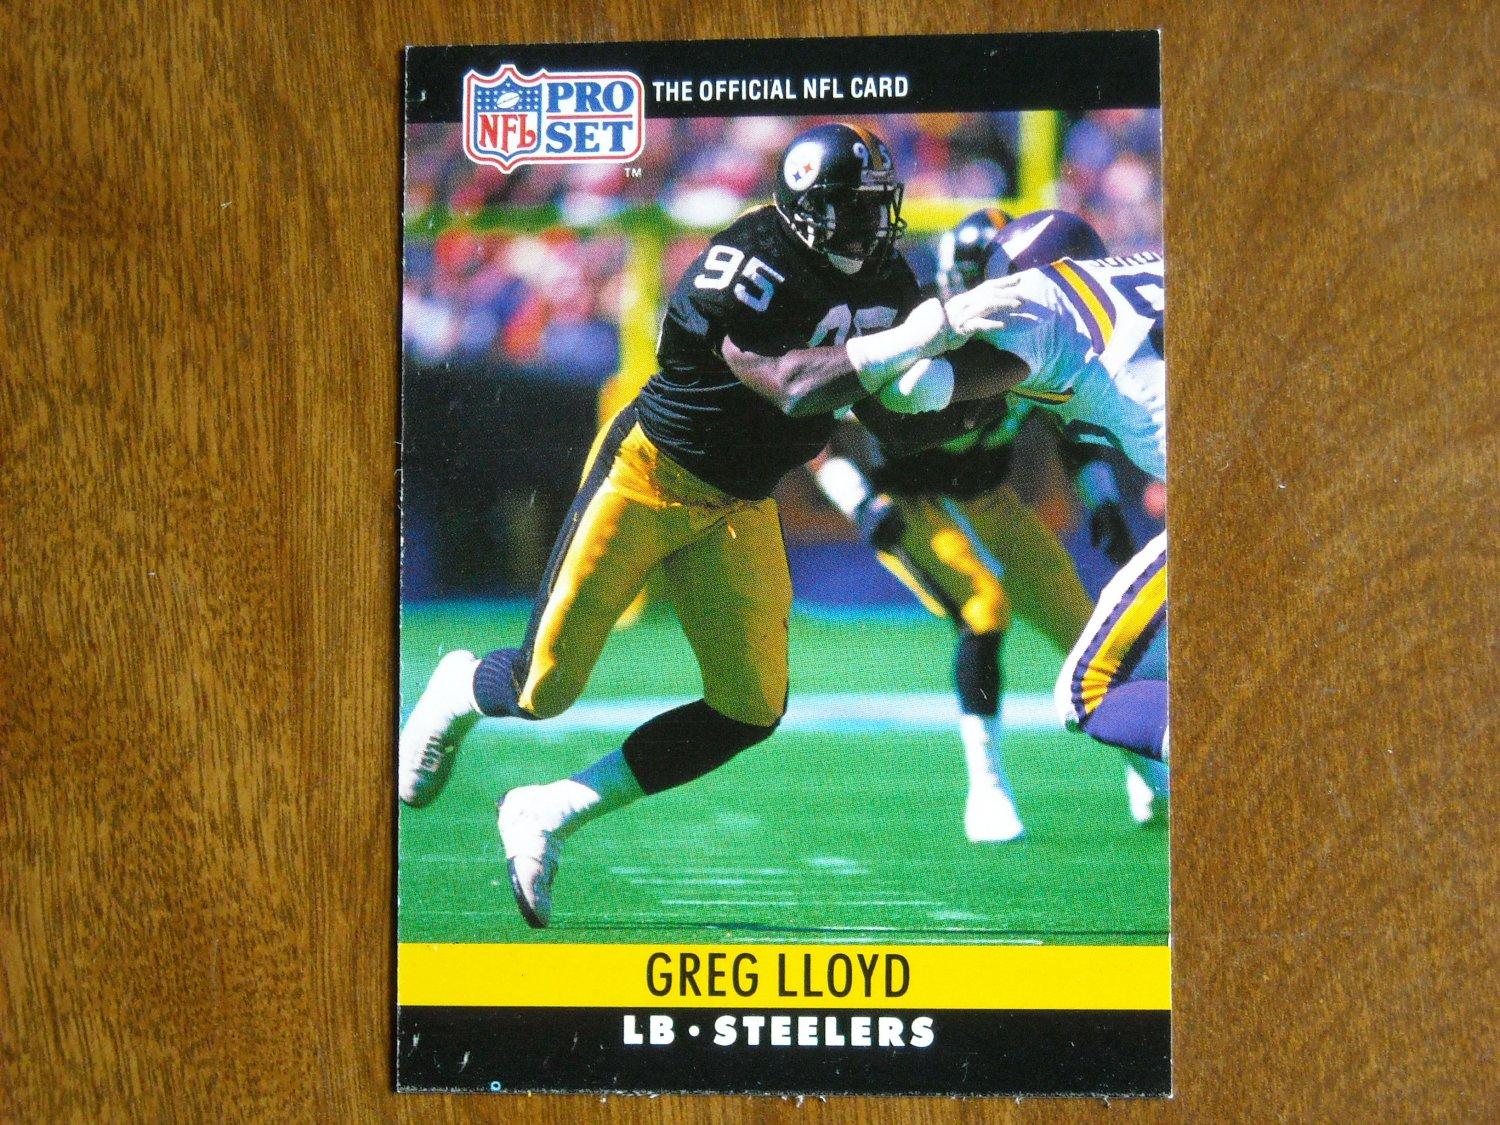 Greg Lloyd Pittsburgh Steelers LB Card No. 272 - 1990 NFL Pro Set Football Card